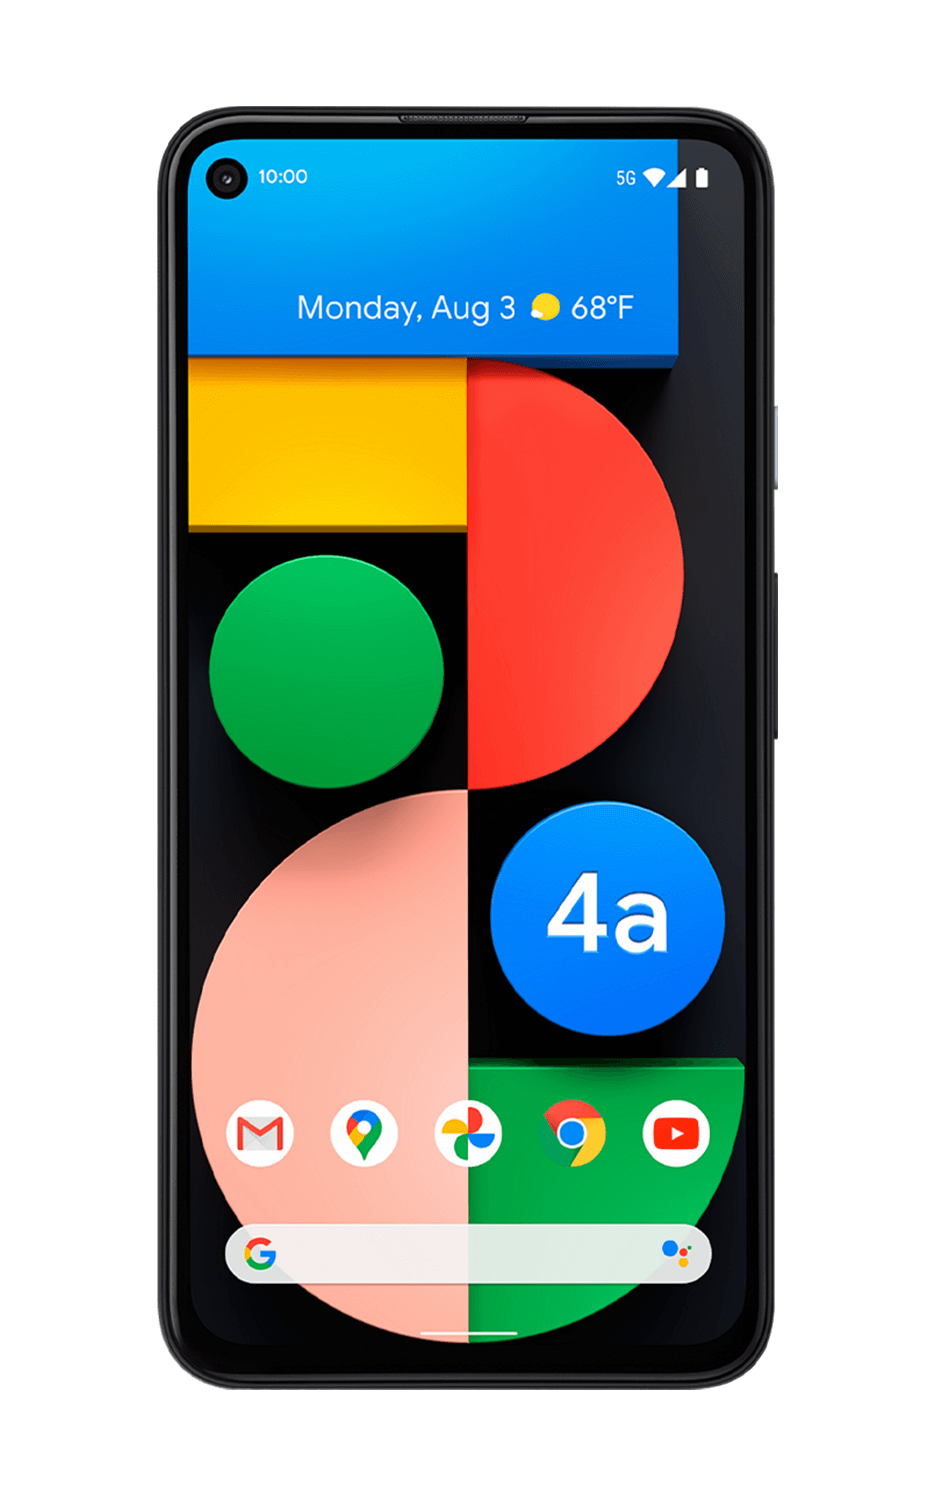 Pixel 4a 5G for $349.99 at T-mobile